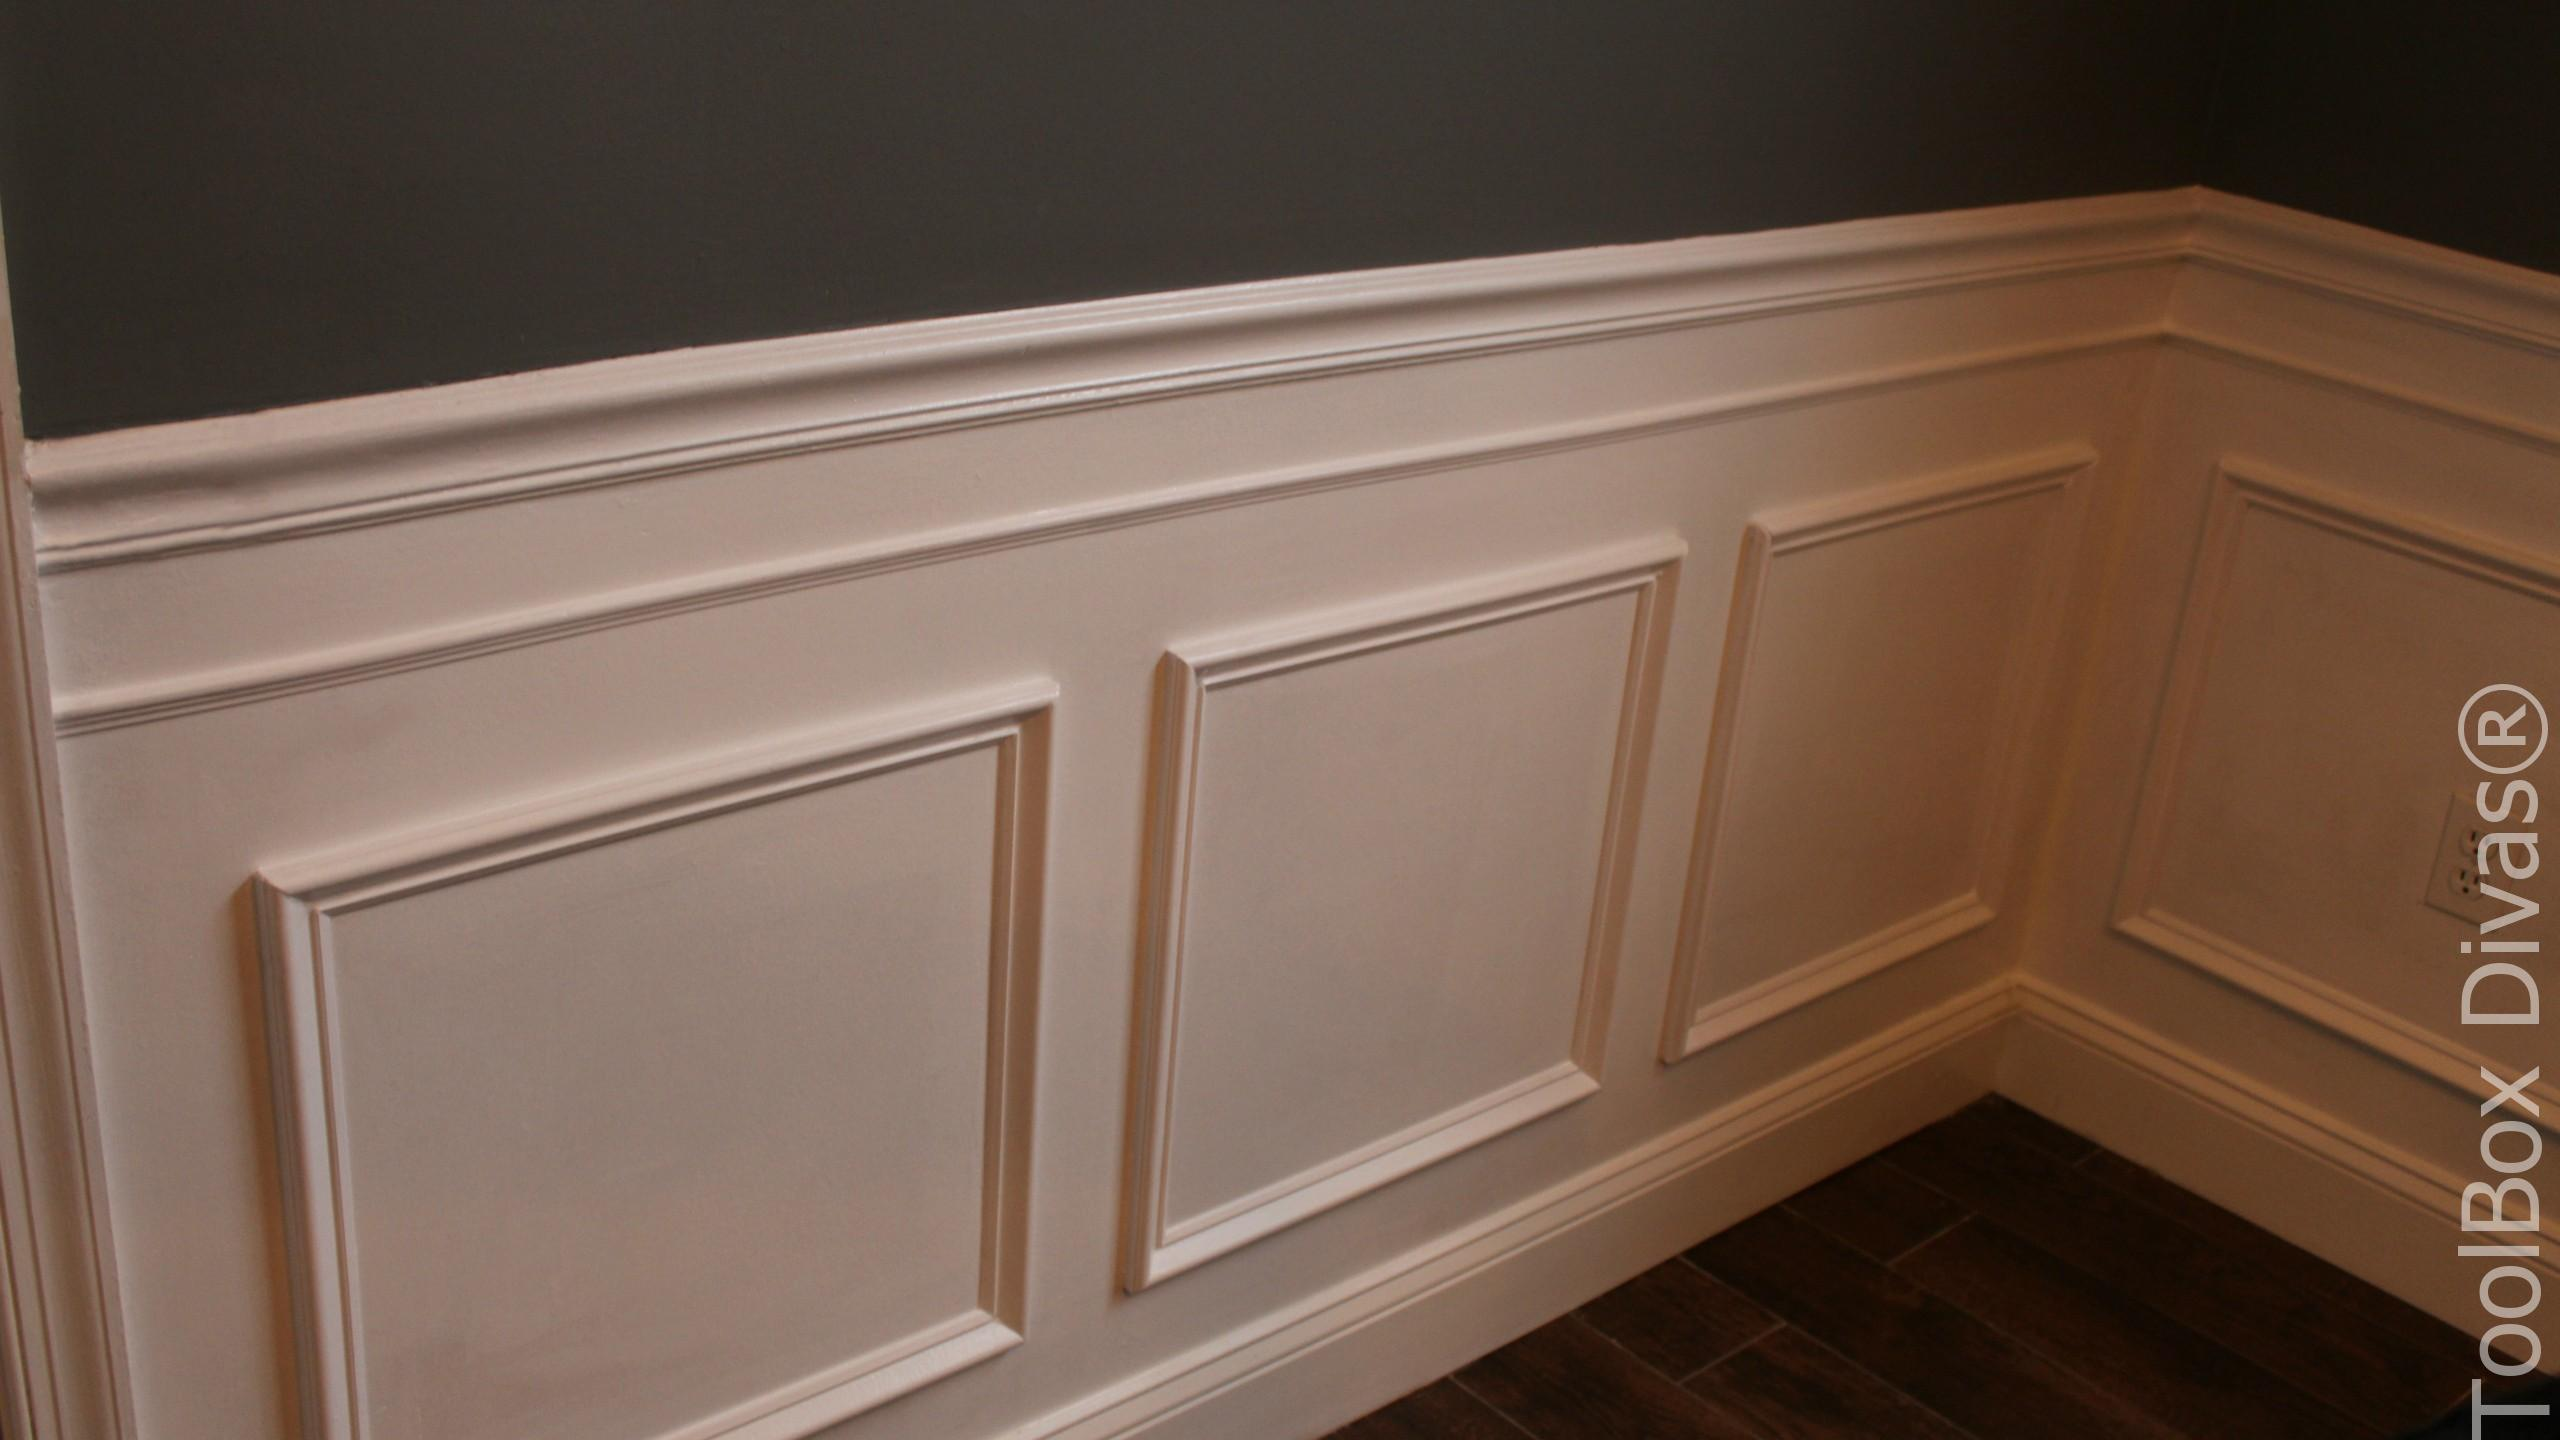 How to Install Picture Frame Moulding Wainscoting - ToolBox ... Wainscoting How To Install on install ceiling fan, install coffered ceiling, install sink, install soffit, install drywall, install home, install water softener,